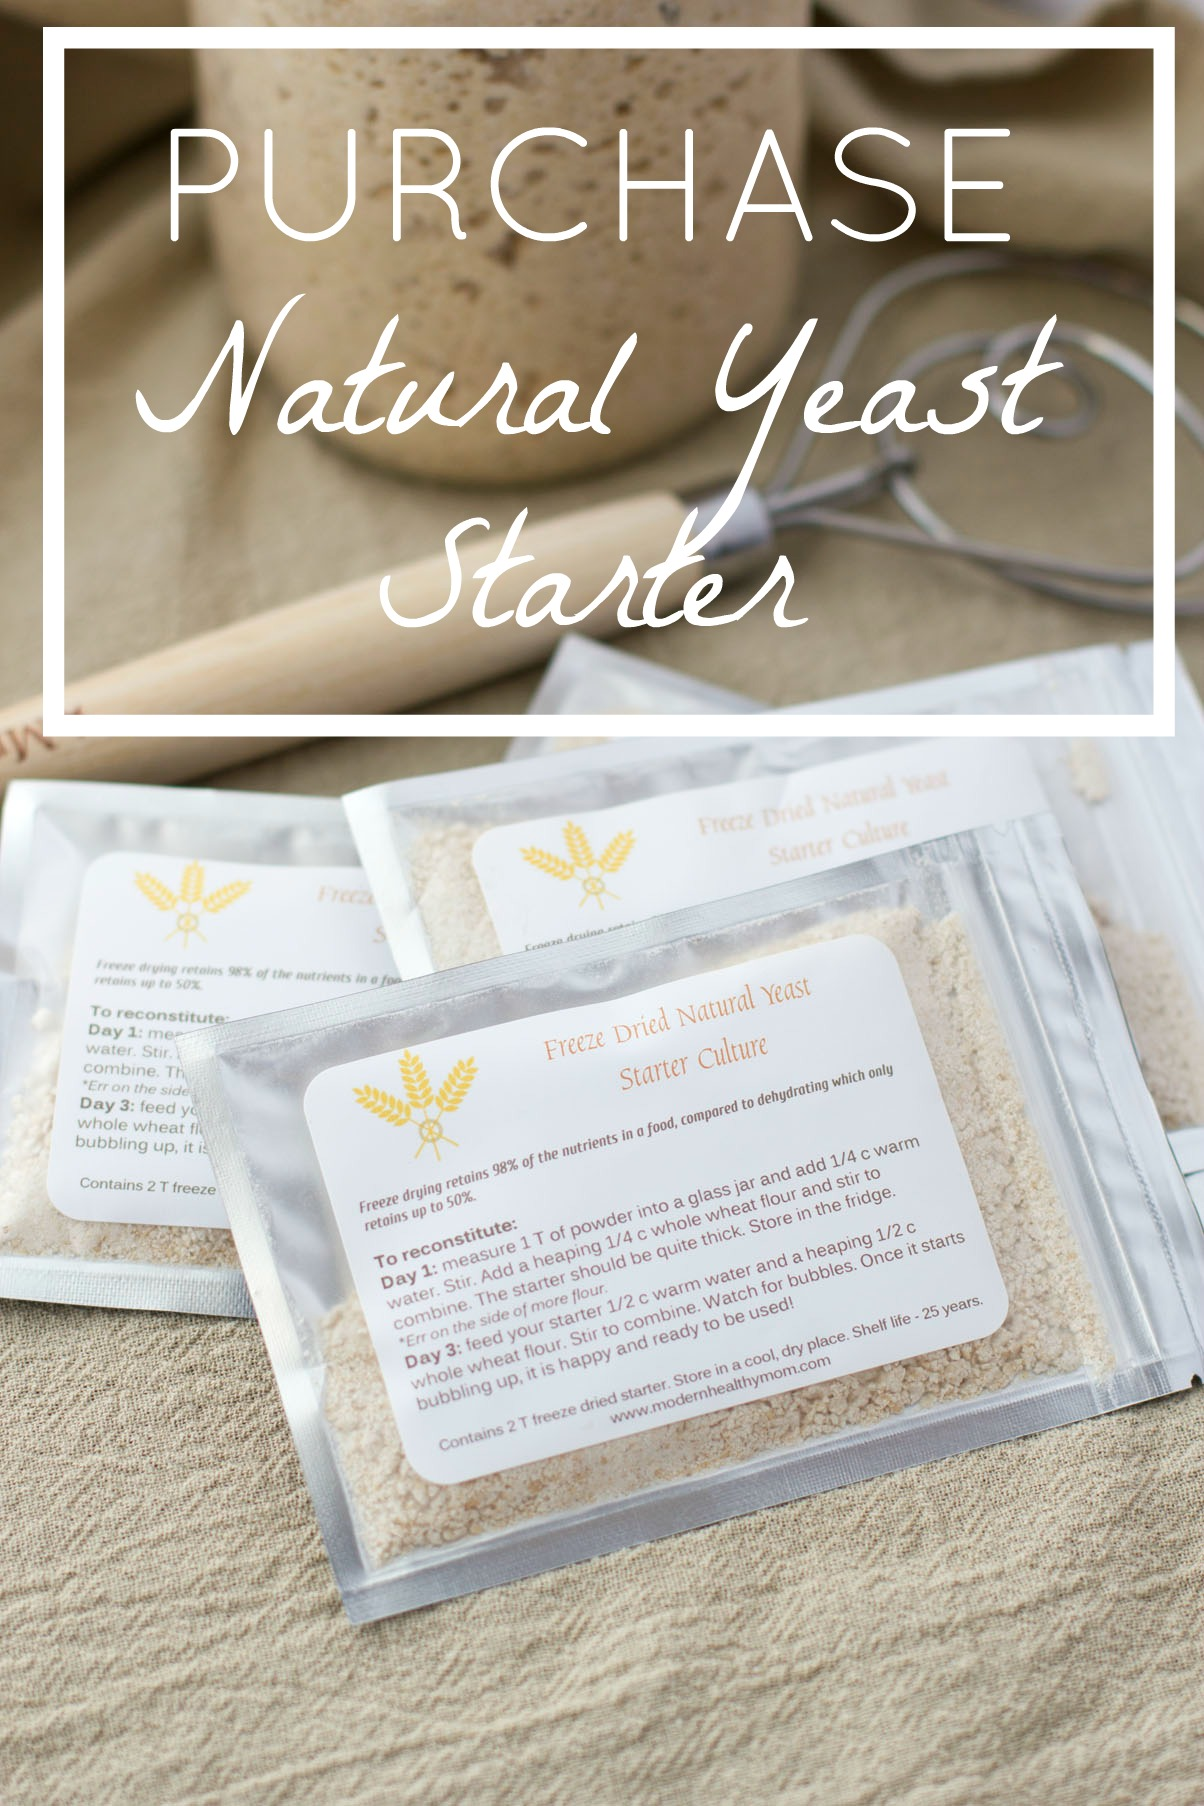 Purchase Natural Yeast Starter